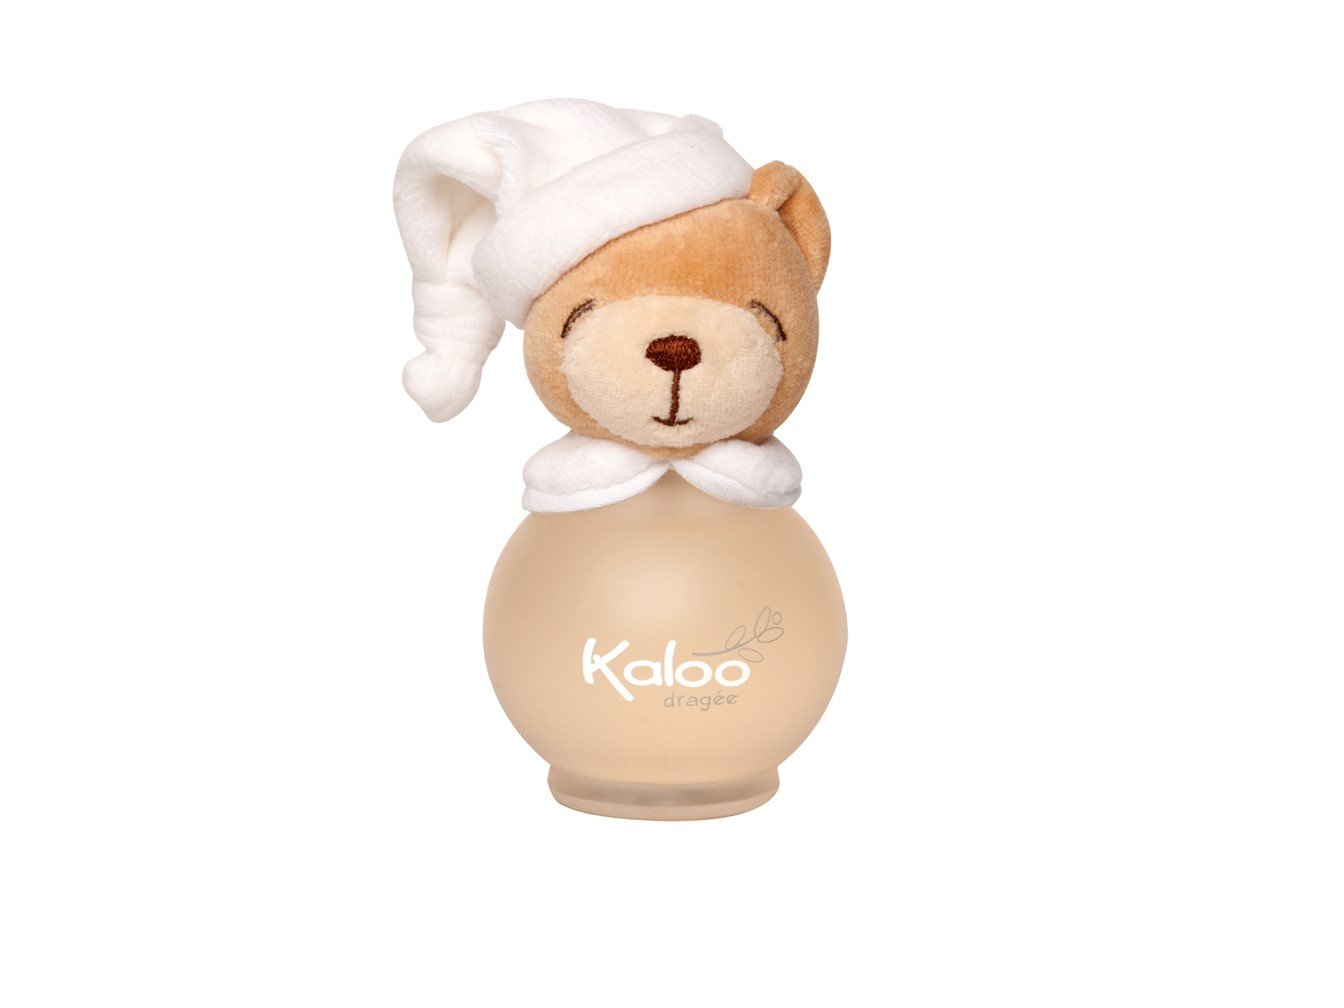 Kaloo Fragrance Dragee Unisex Alcohol Free Parfum for Baby, 3.4 Fluid Ounce